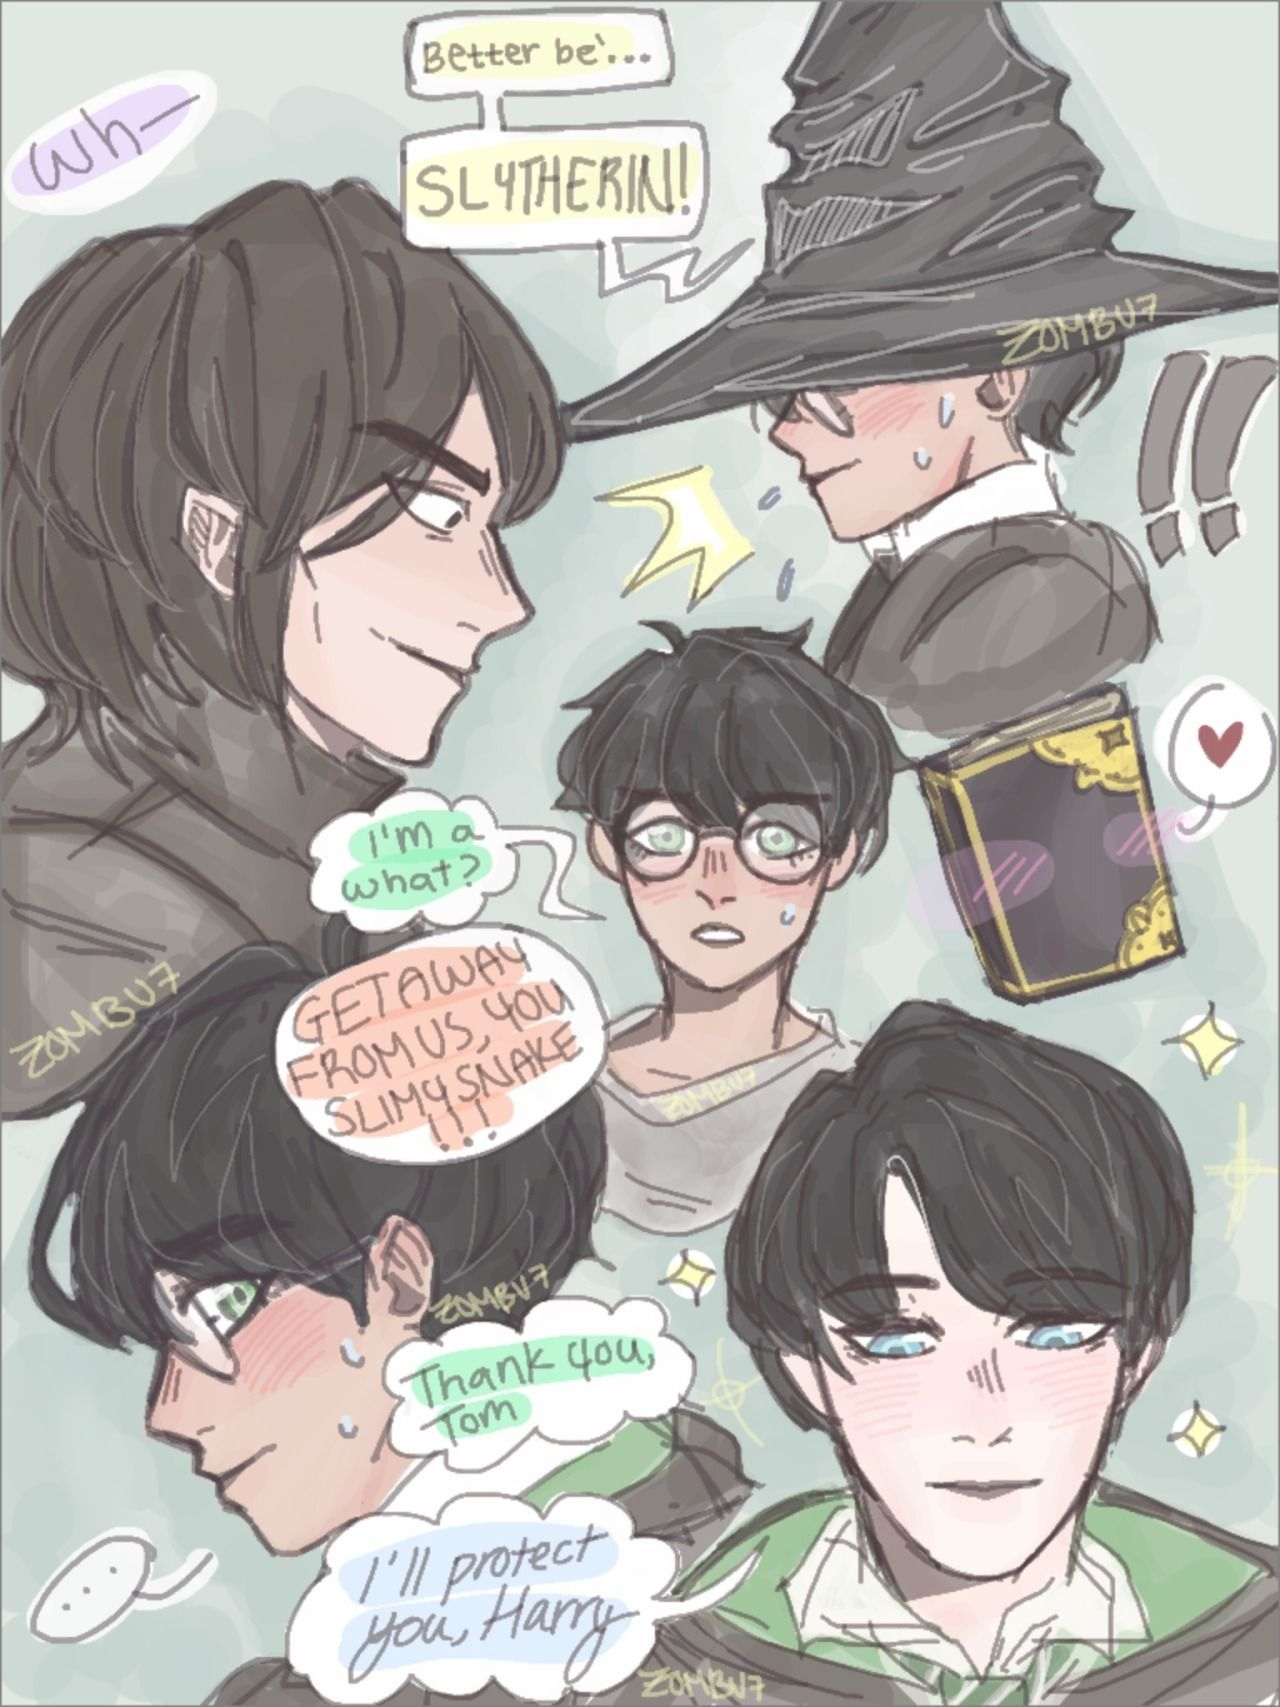 That One Au Where Harry Potter Is Sorted Into Slytherin Tom Riddle Was Born On 1976 And Snape Has To Deal With A Lot Of Problems Harry Potter Comics Harry Potter